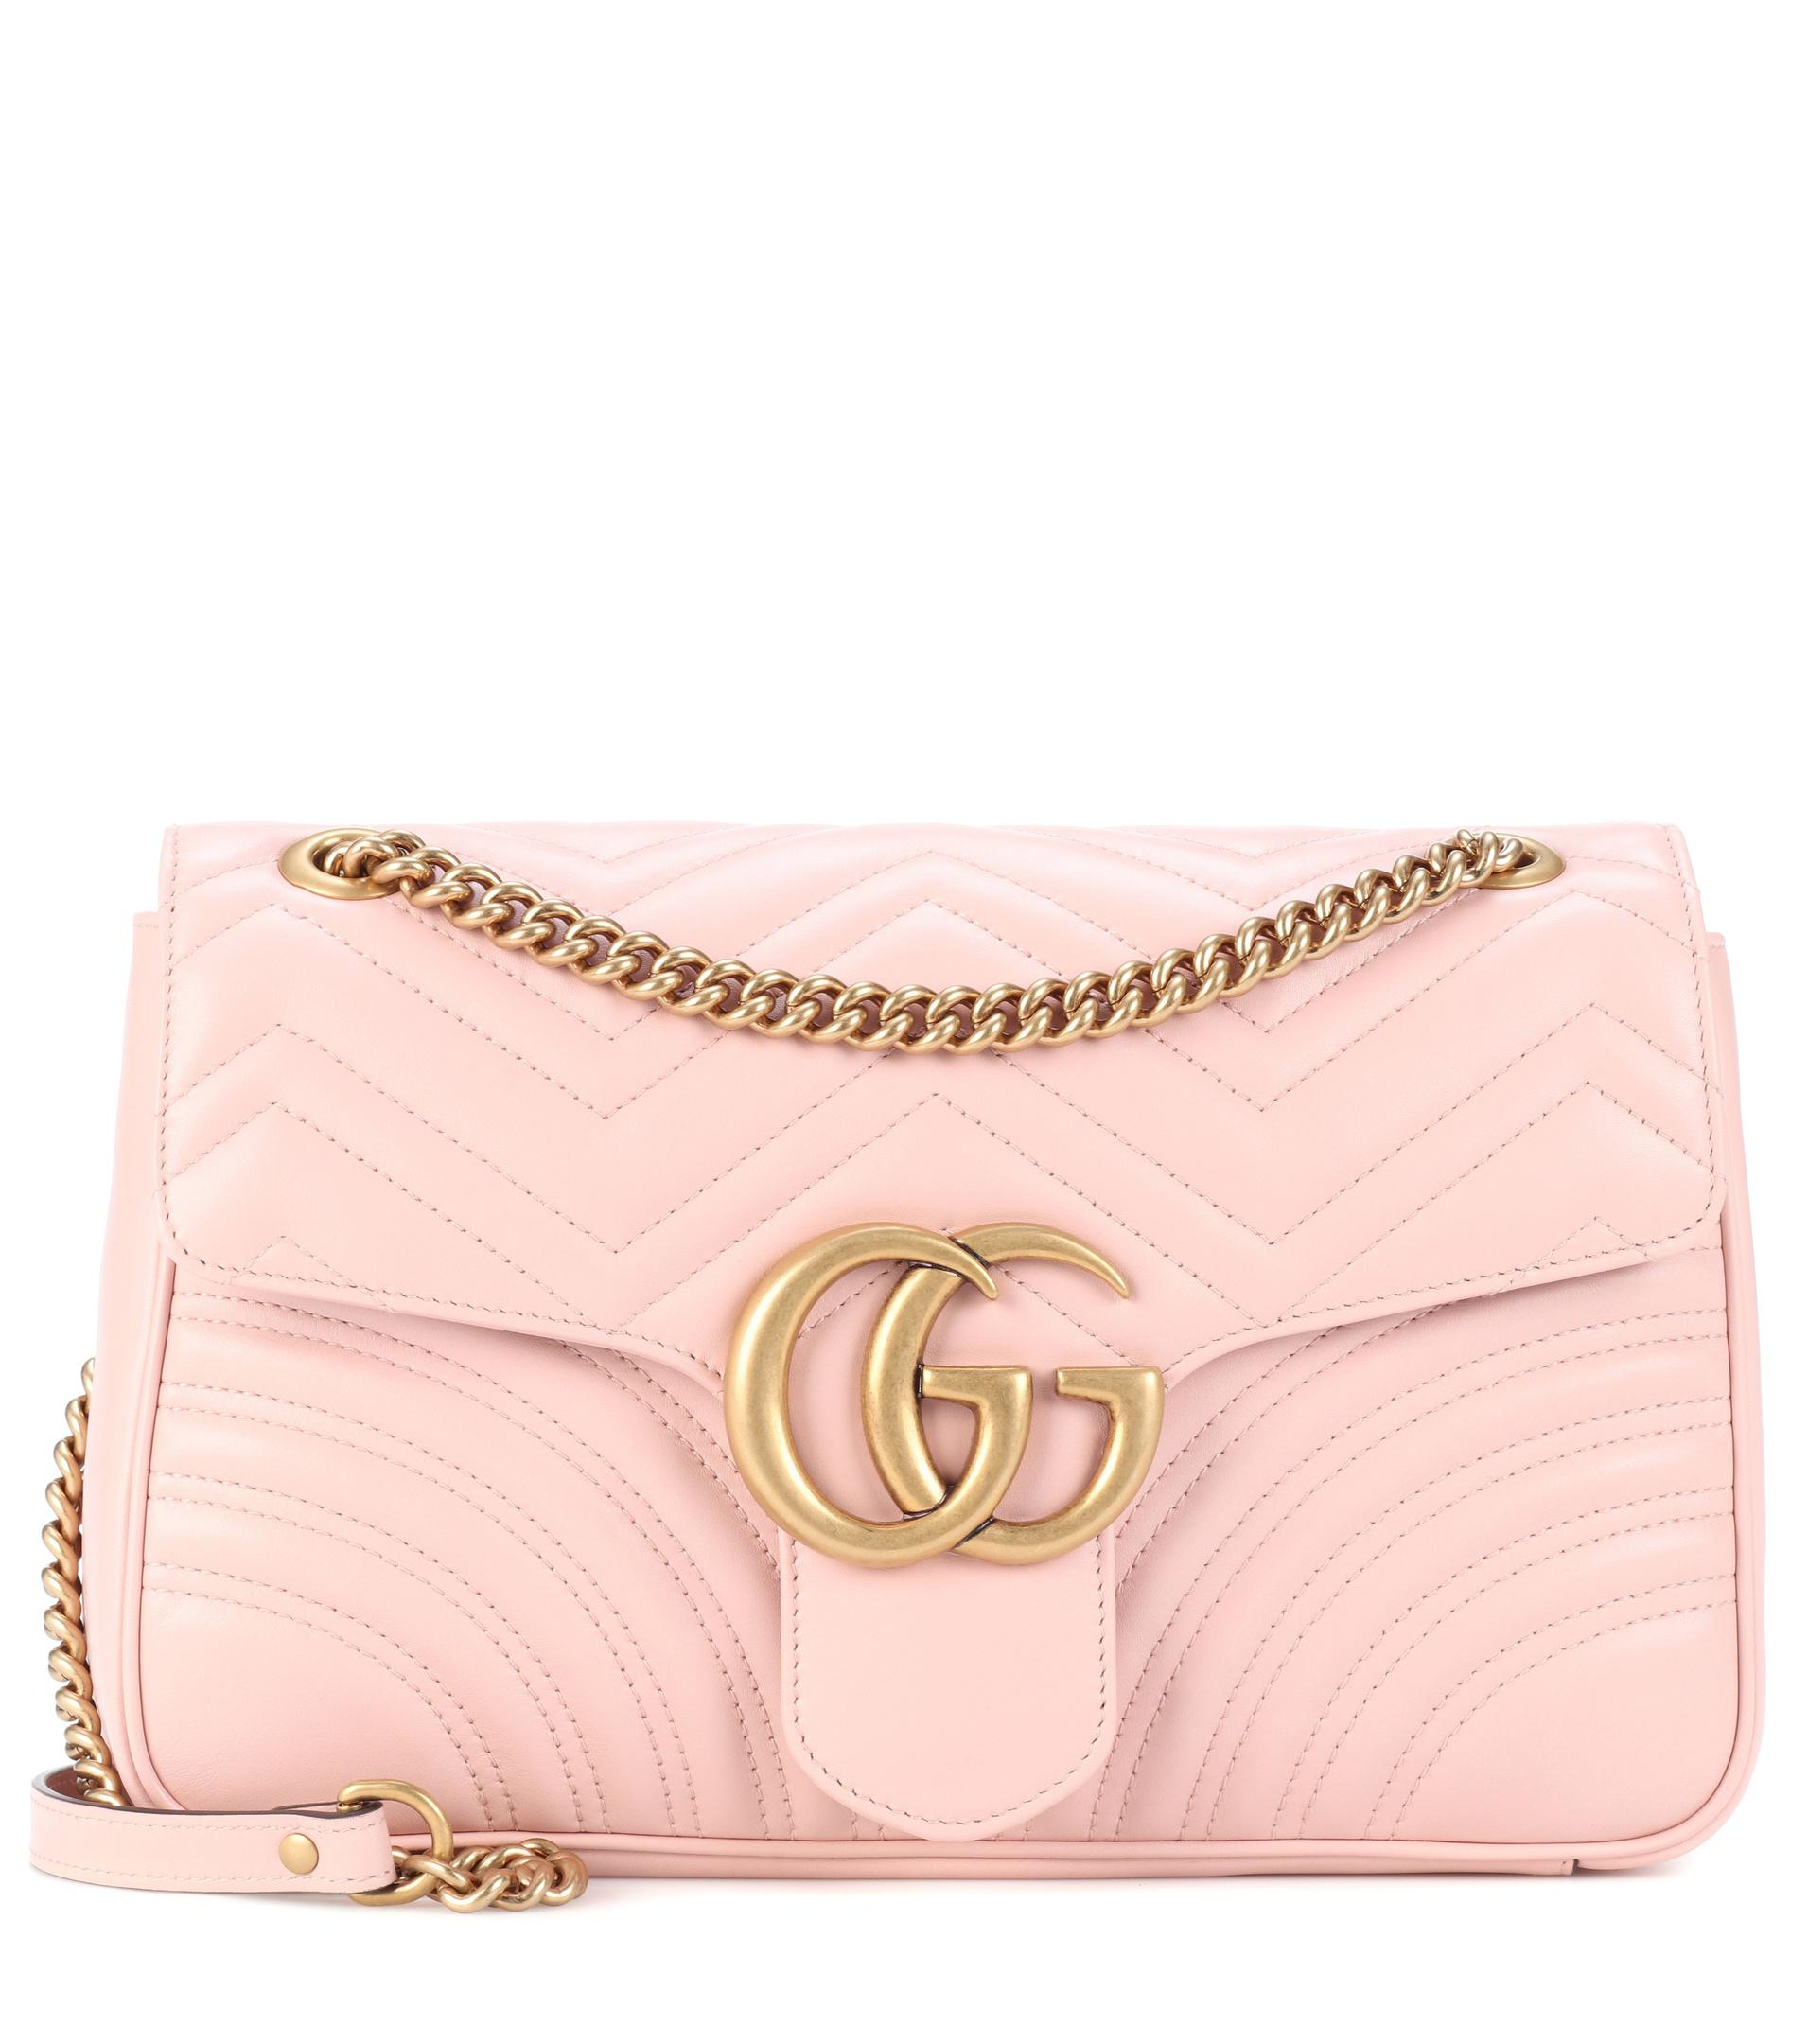 af43d3218c5 Lyst - Gucci Gg Marmont Medium Matelassé Leather Shoulder Bag in Pink